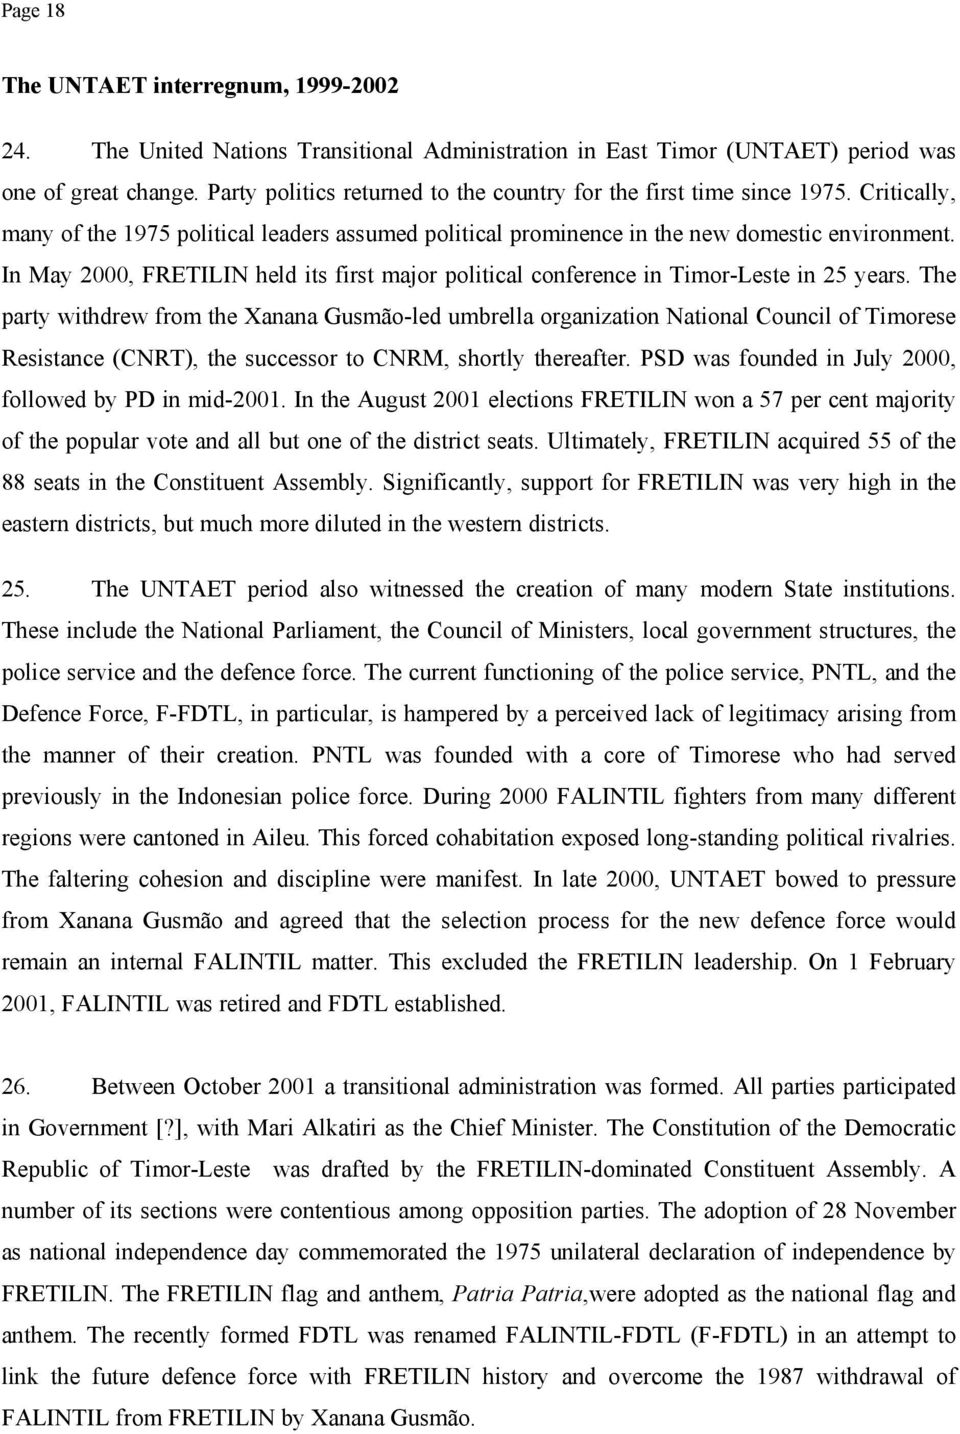 In May 2000, FRETILIN held its first major political conference in Timor-Leste in 25 years.